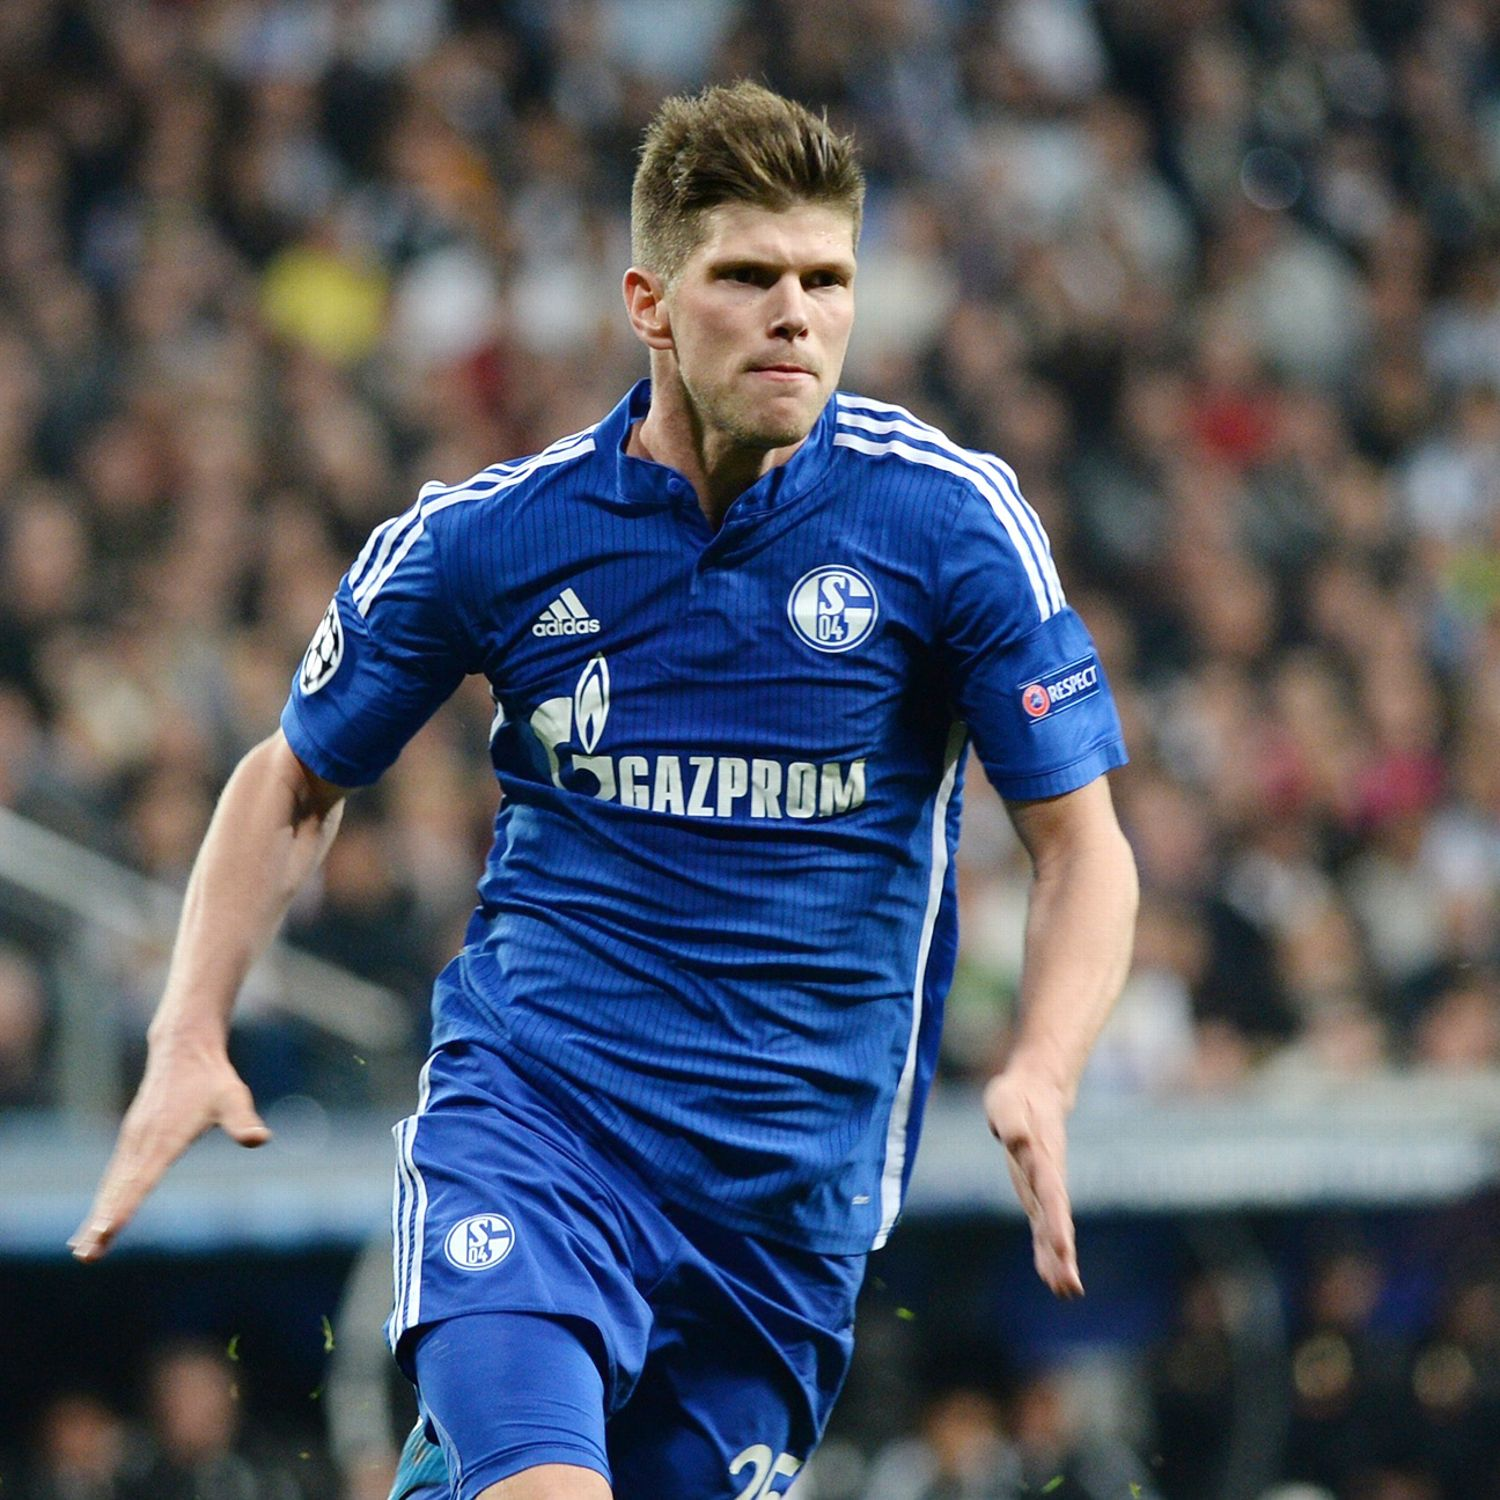 Klaas-Jan Huntelaar Return Would Add Value To Ajax